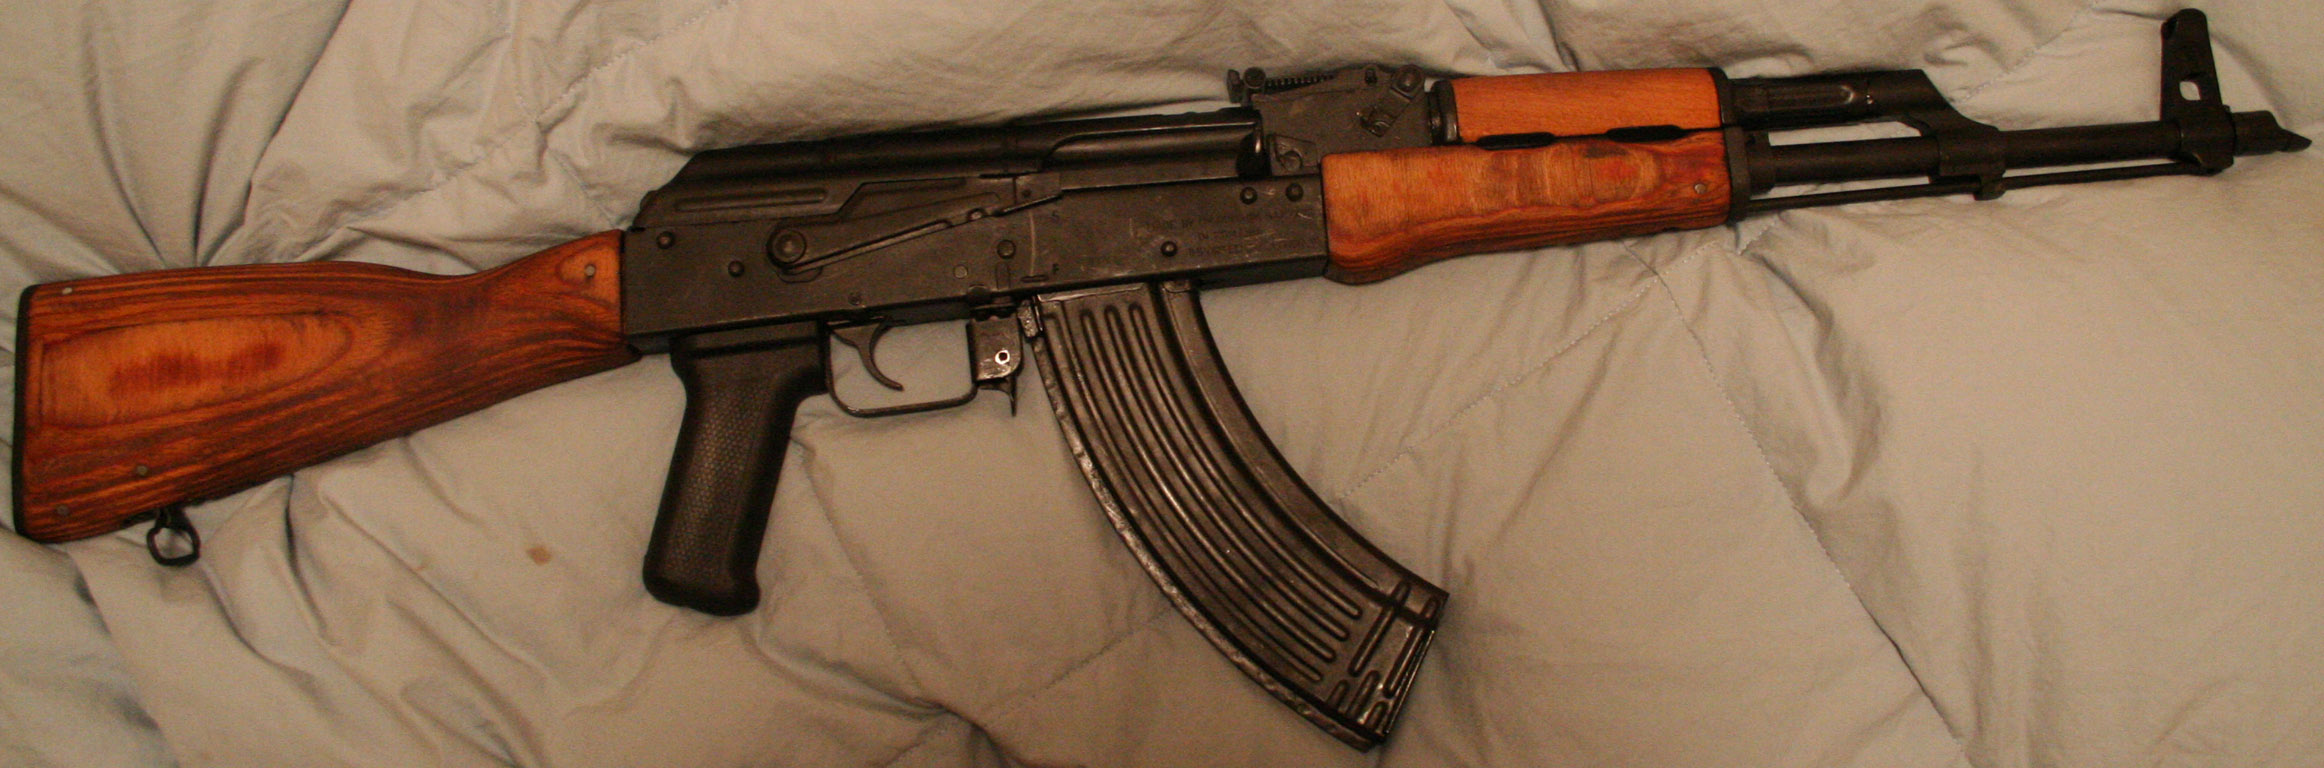 AK 47 Wallpaper And Background Image